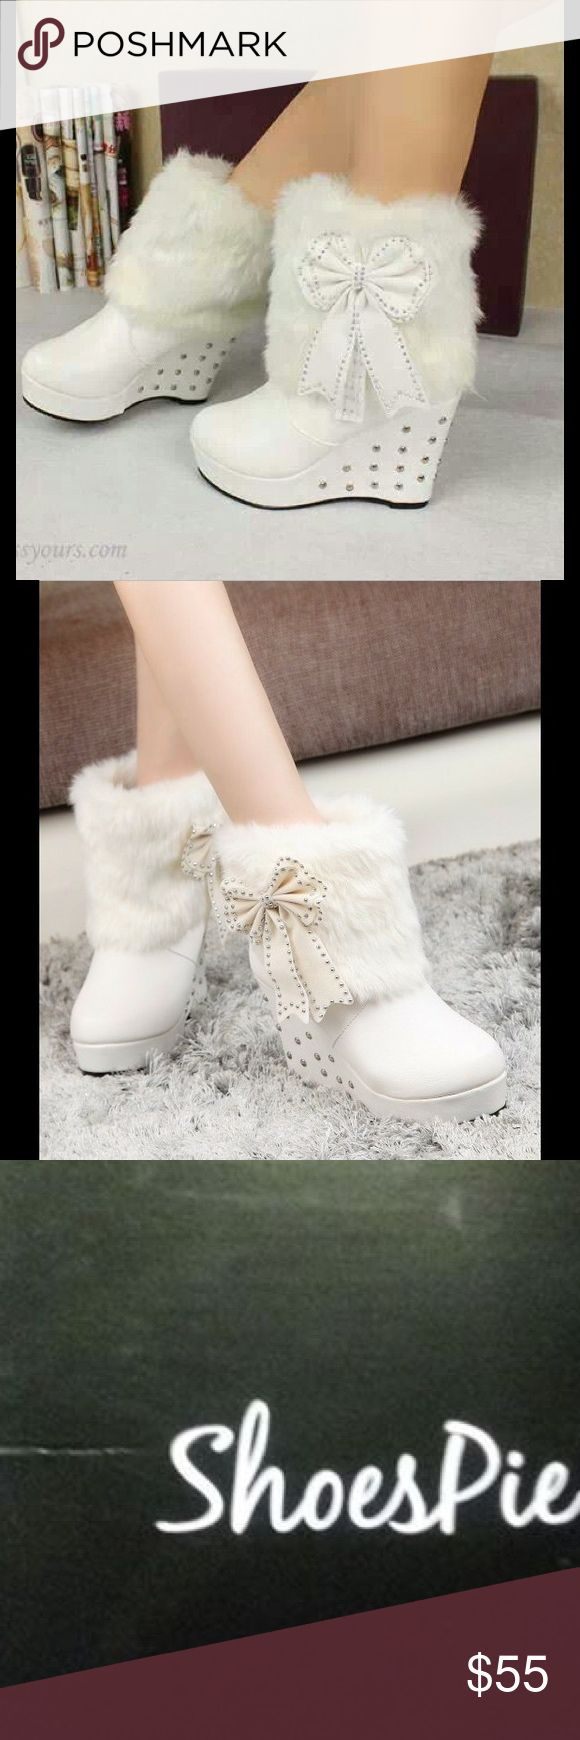 One Day Sale! Shoes pie white wedge bow booties Lightly worn. Size 6.5/7. Faux Fur. Shoespie Shoes Ankle Boots & Booties